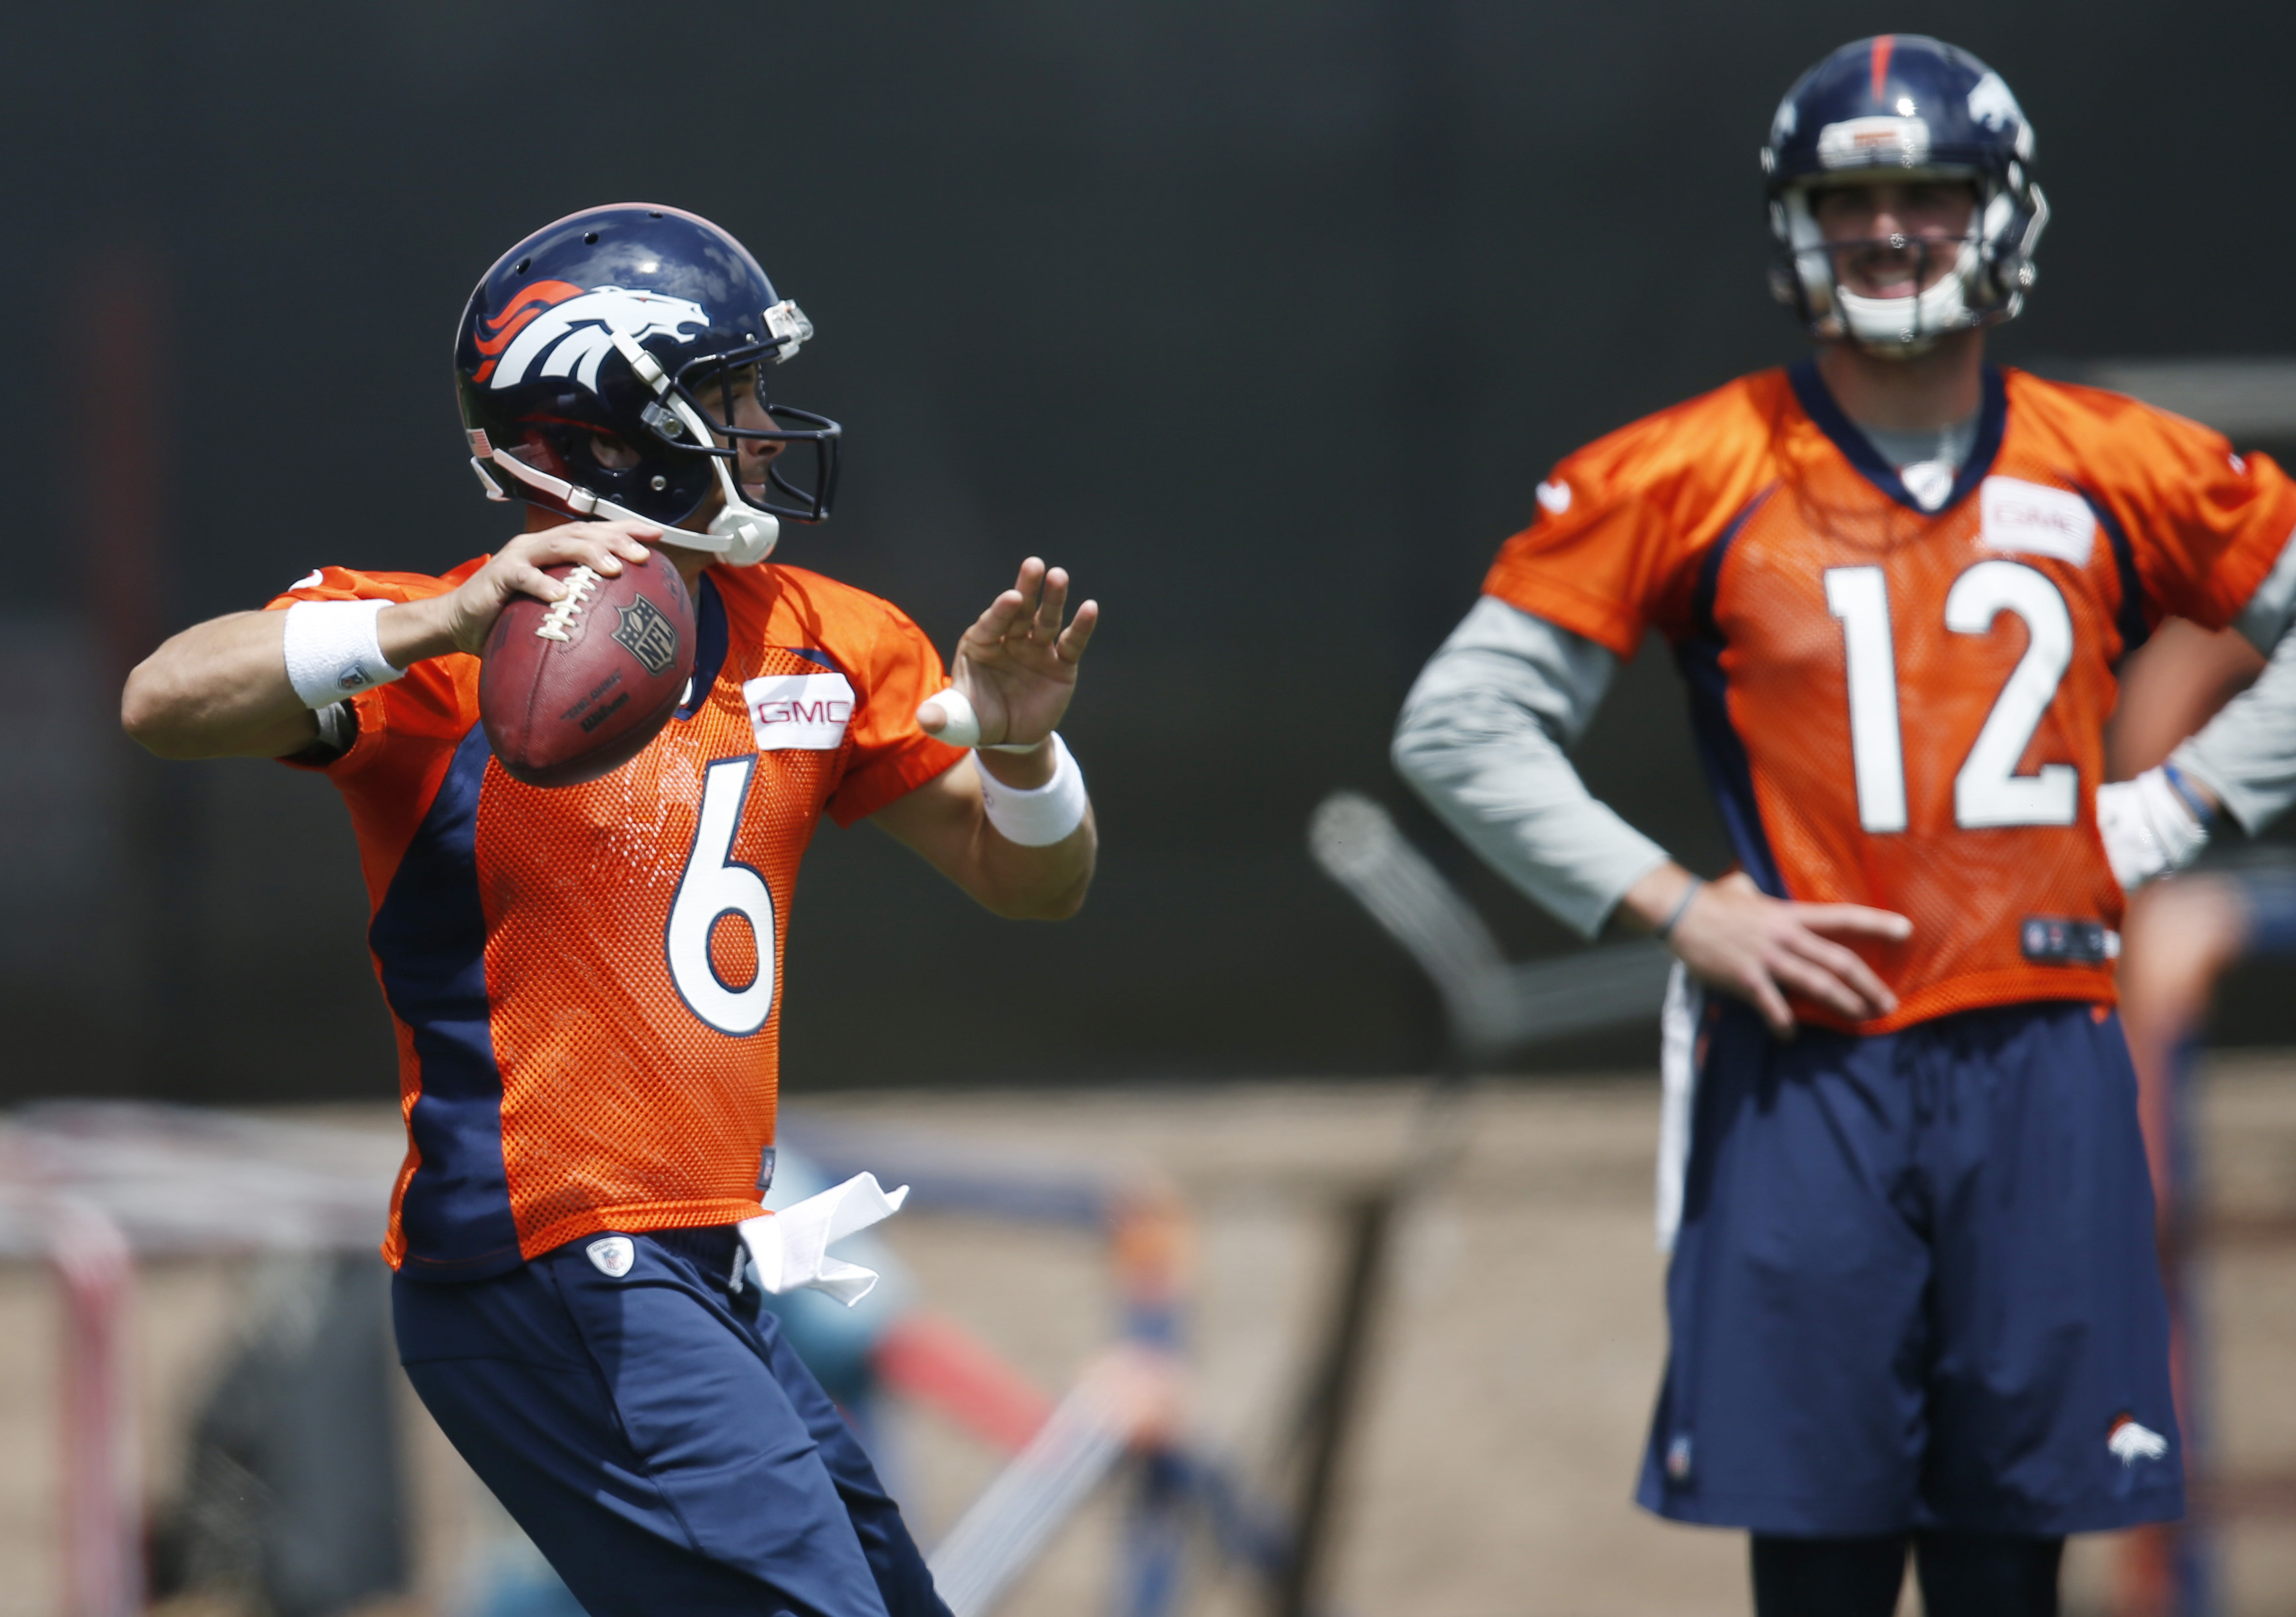 In this Tuesday, May 31, 2016, photograph, Denver Broncos quarterback Mark Sanchez, front, takes part in a passing drills as rookie quarterback Paxton Lynch looks on during an NFL football practice at the team's headquarters in Englewood, Colo. The Bronco